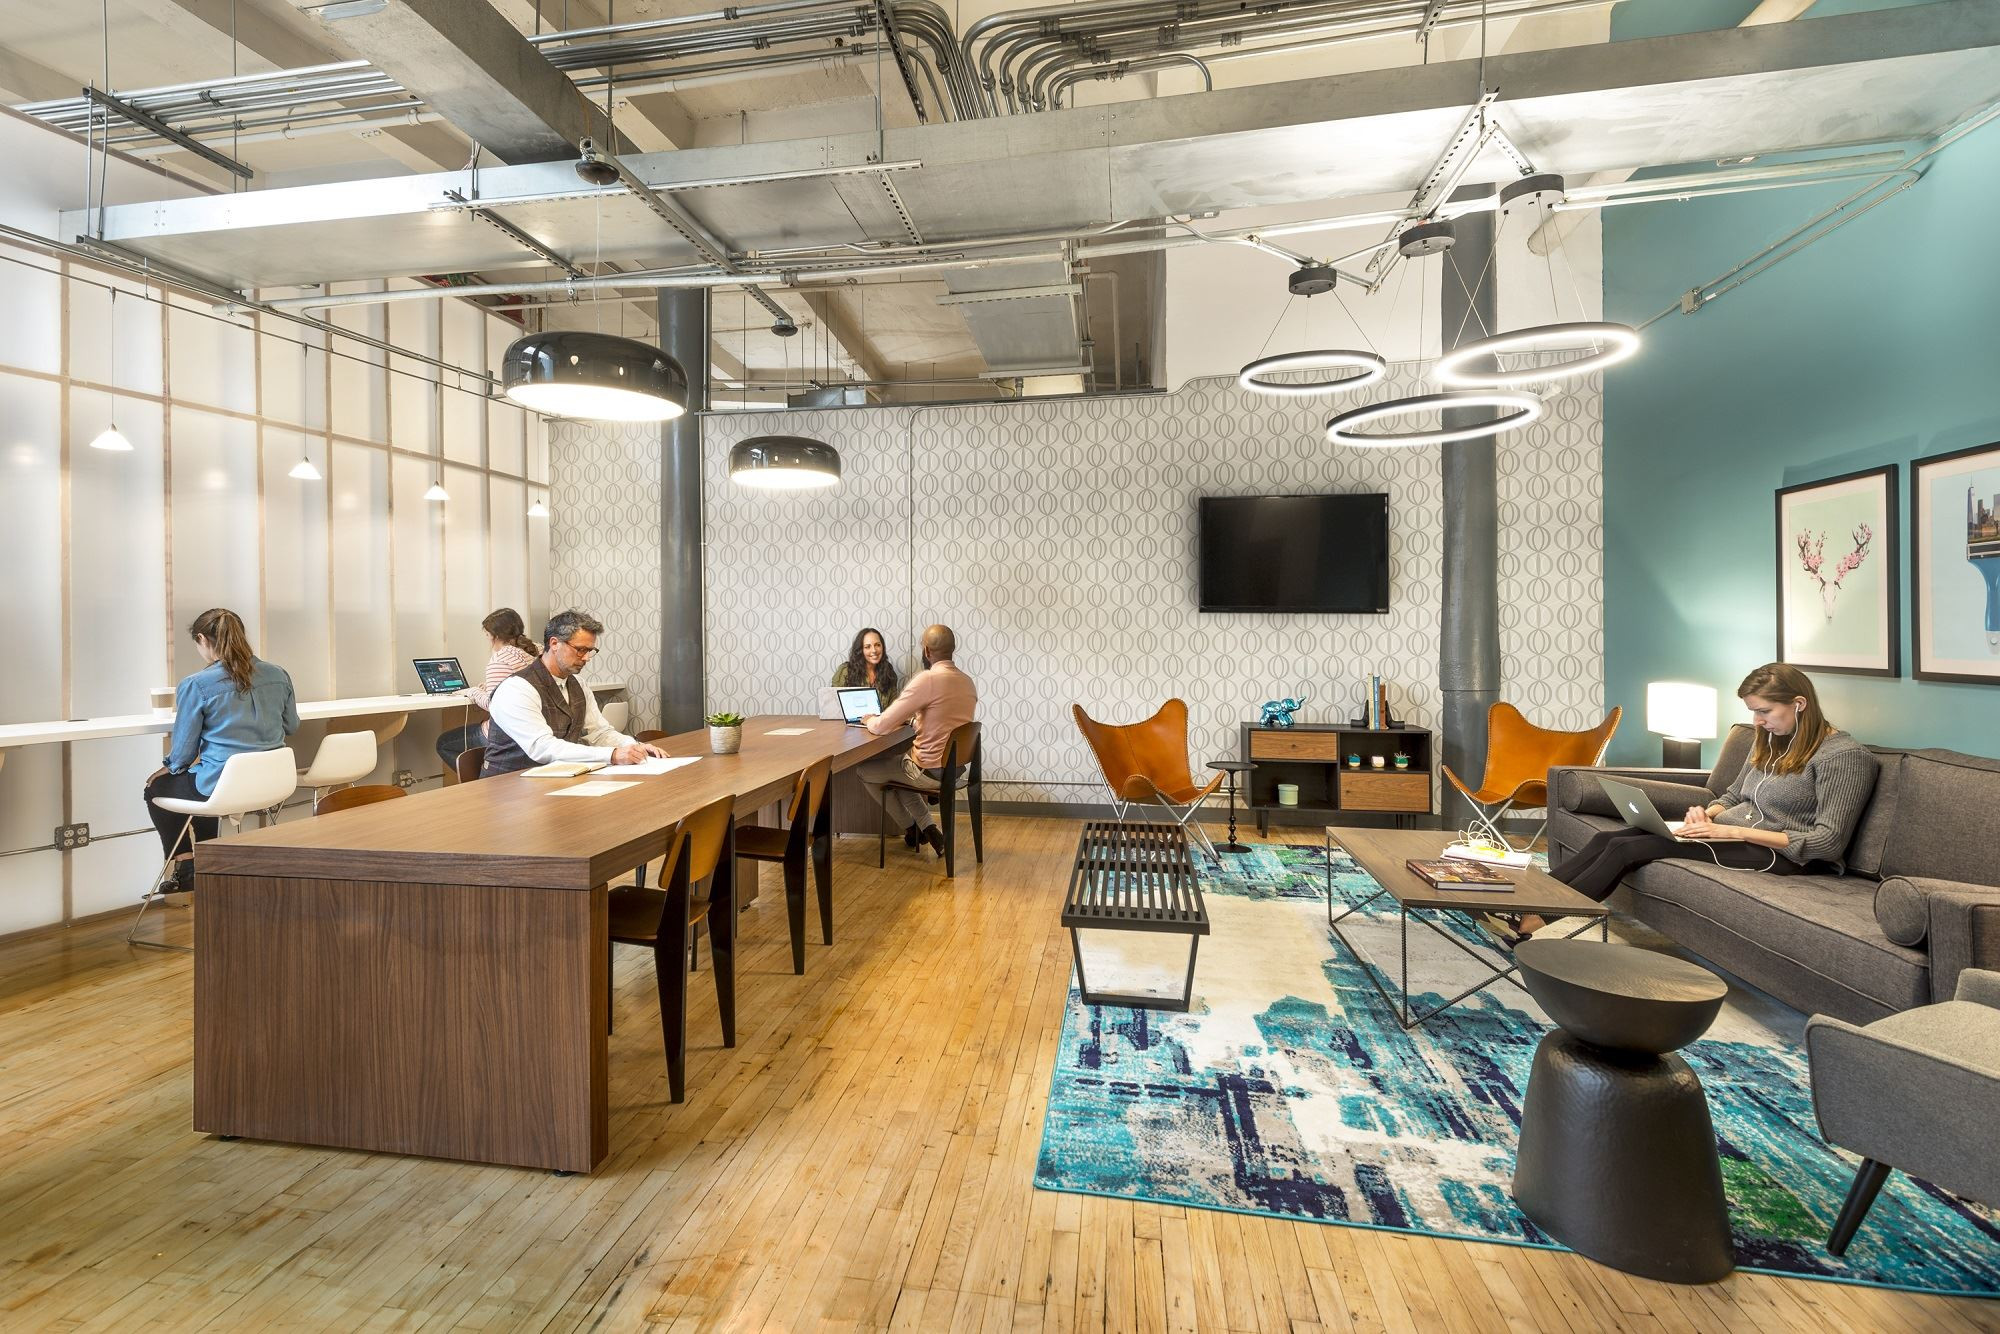 hardwood floor installation cost nyc of union square new york office and coworking spaces for rent techspace within workwork space